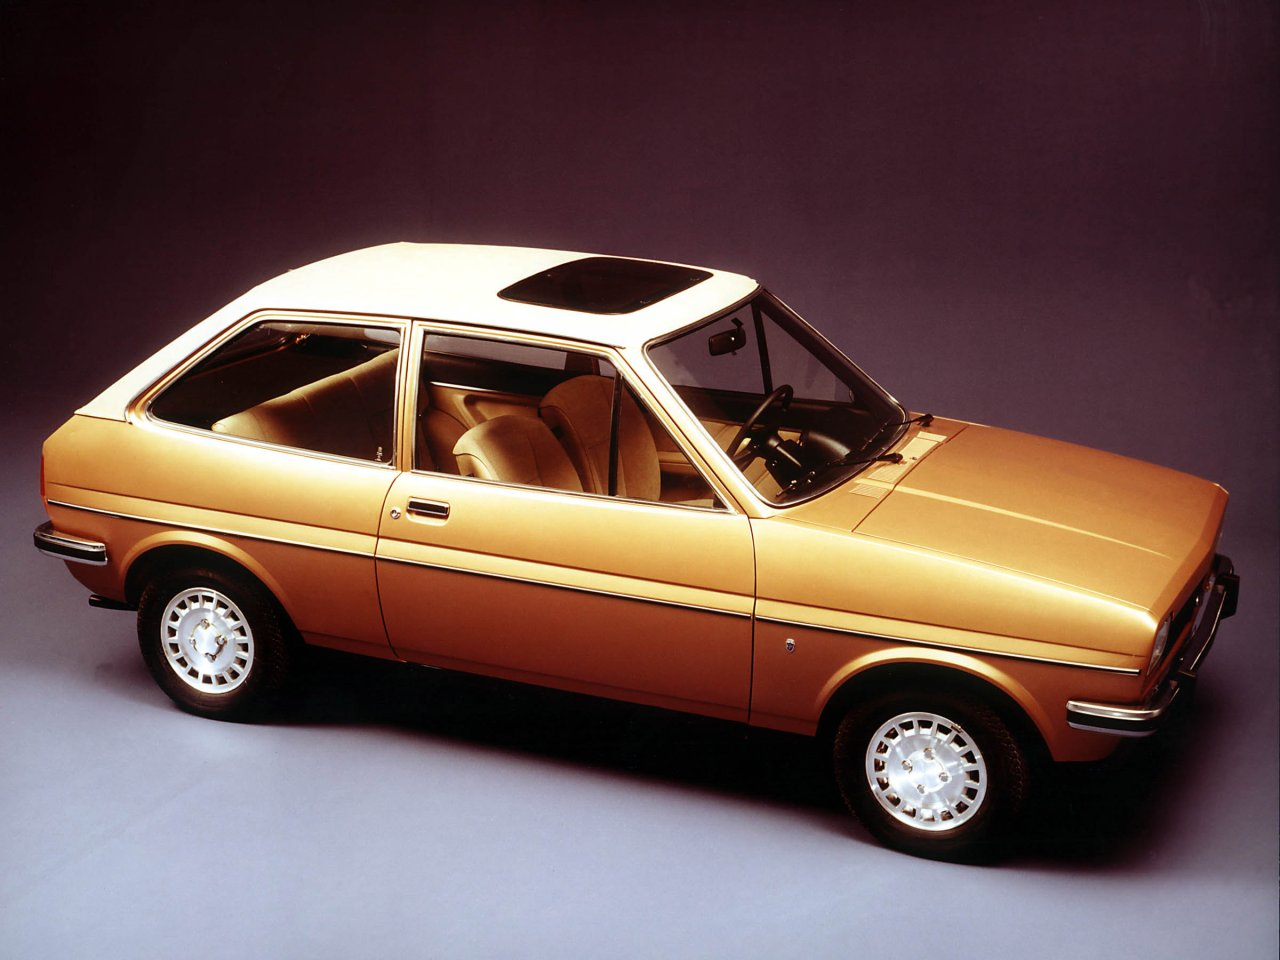 Ford Taunus 1989 Review Amazing Pictures And Images Look At The Car Festiva Wiring Diagram Photo 5